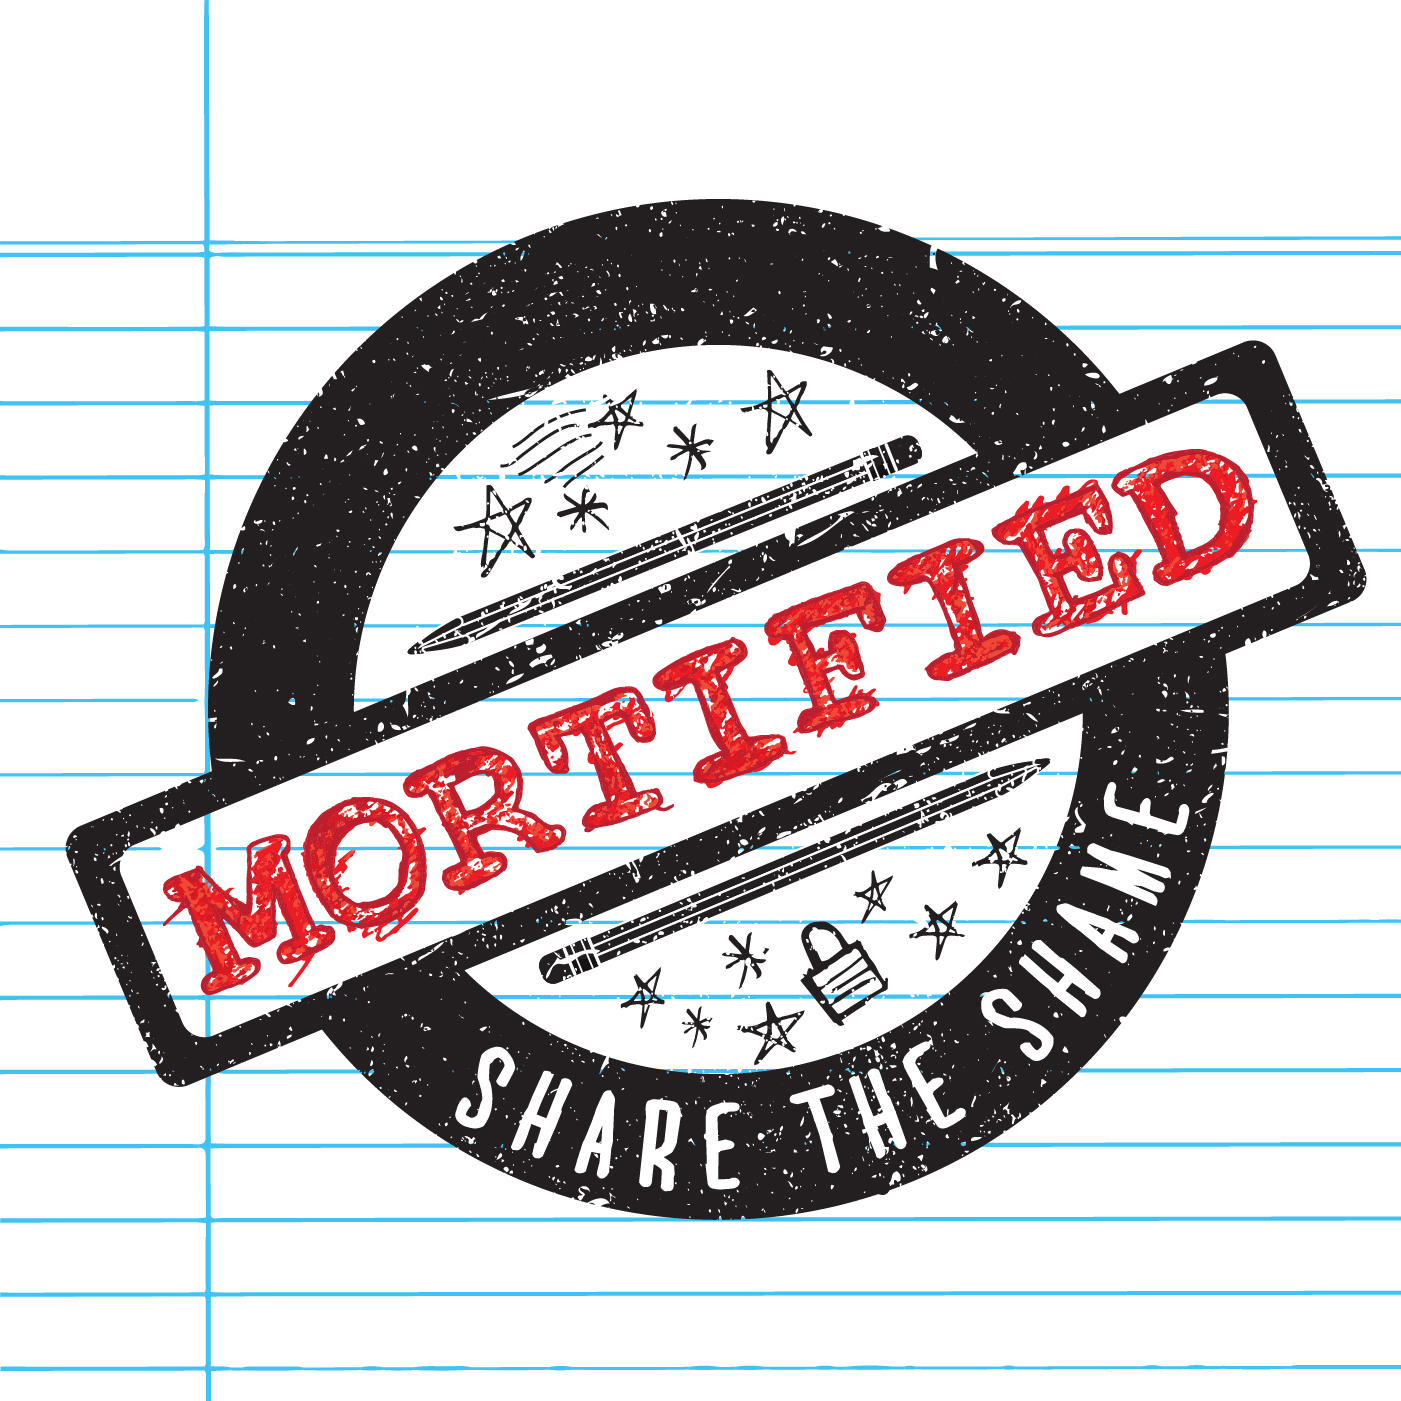 Mortified_-_circle_logo_small